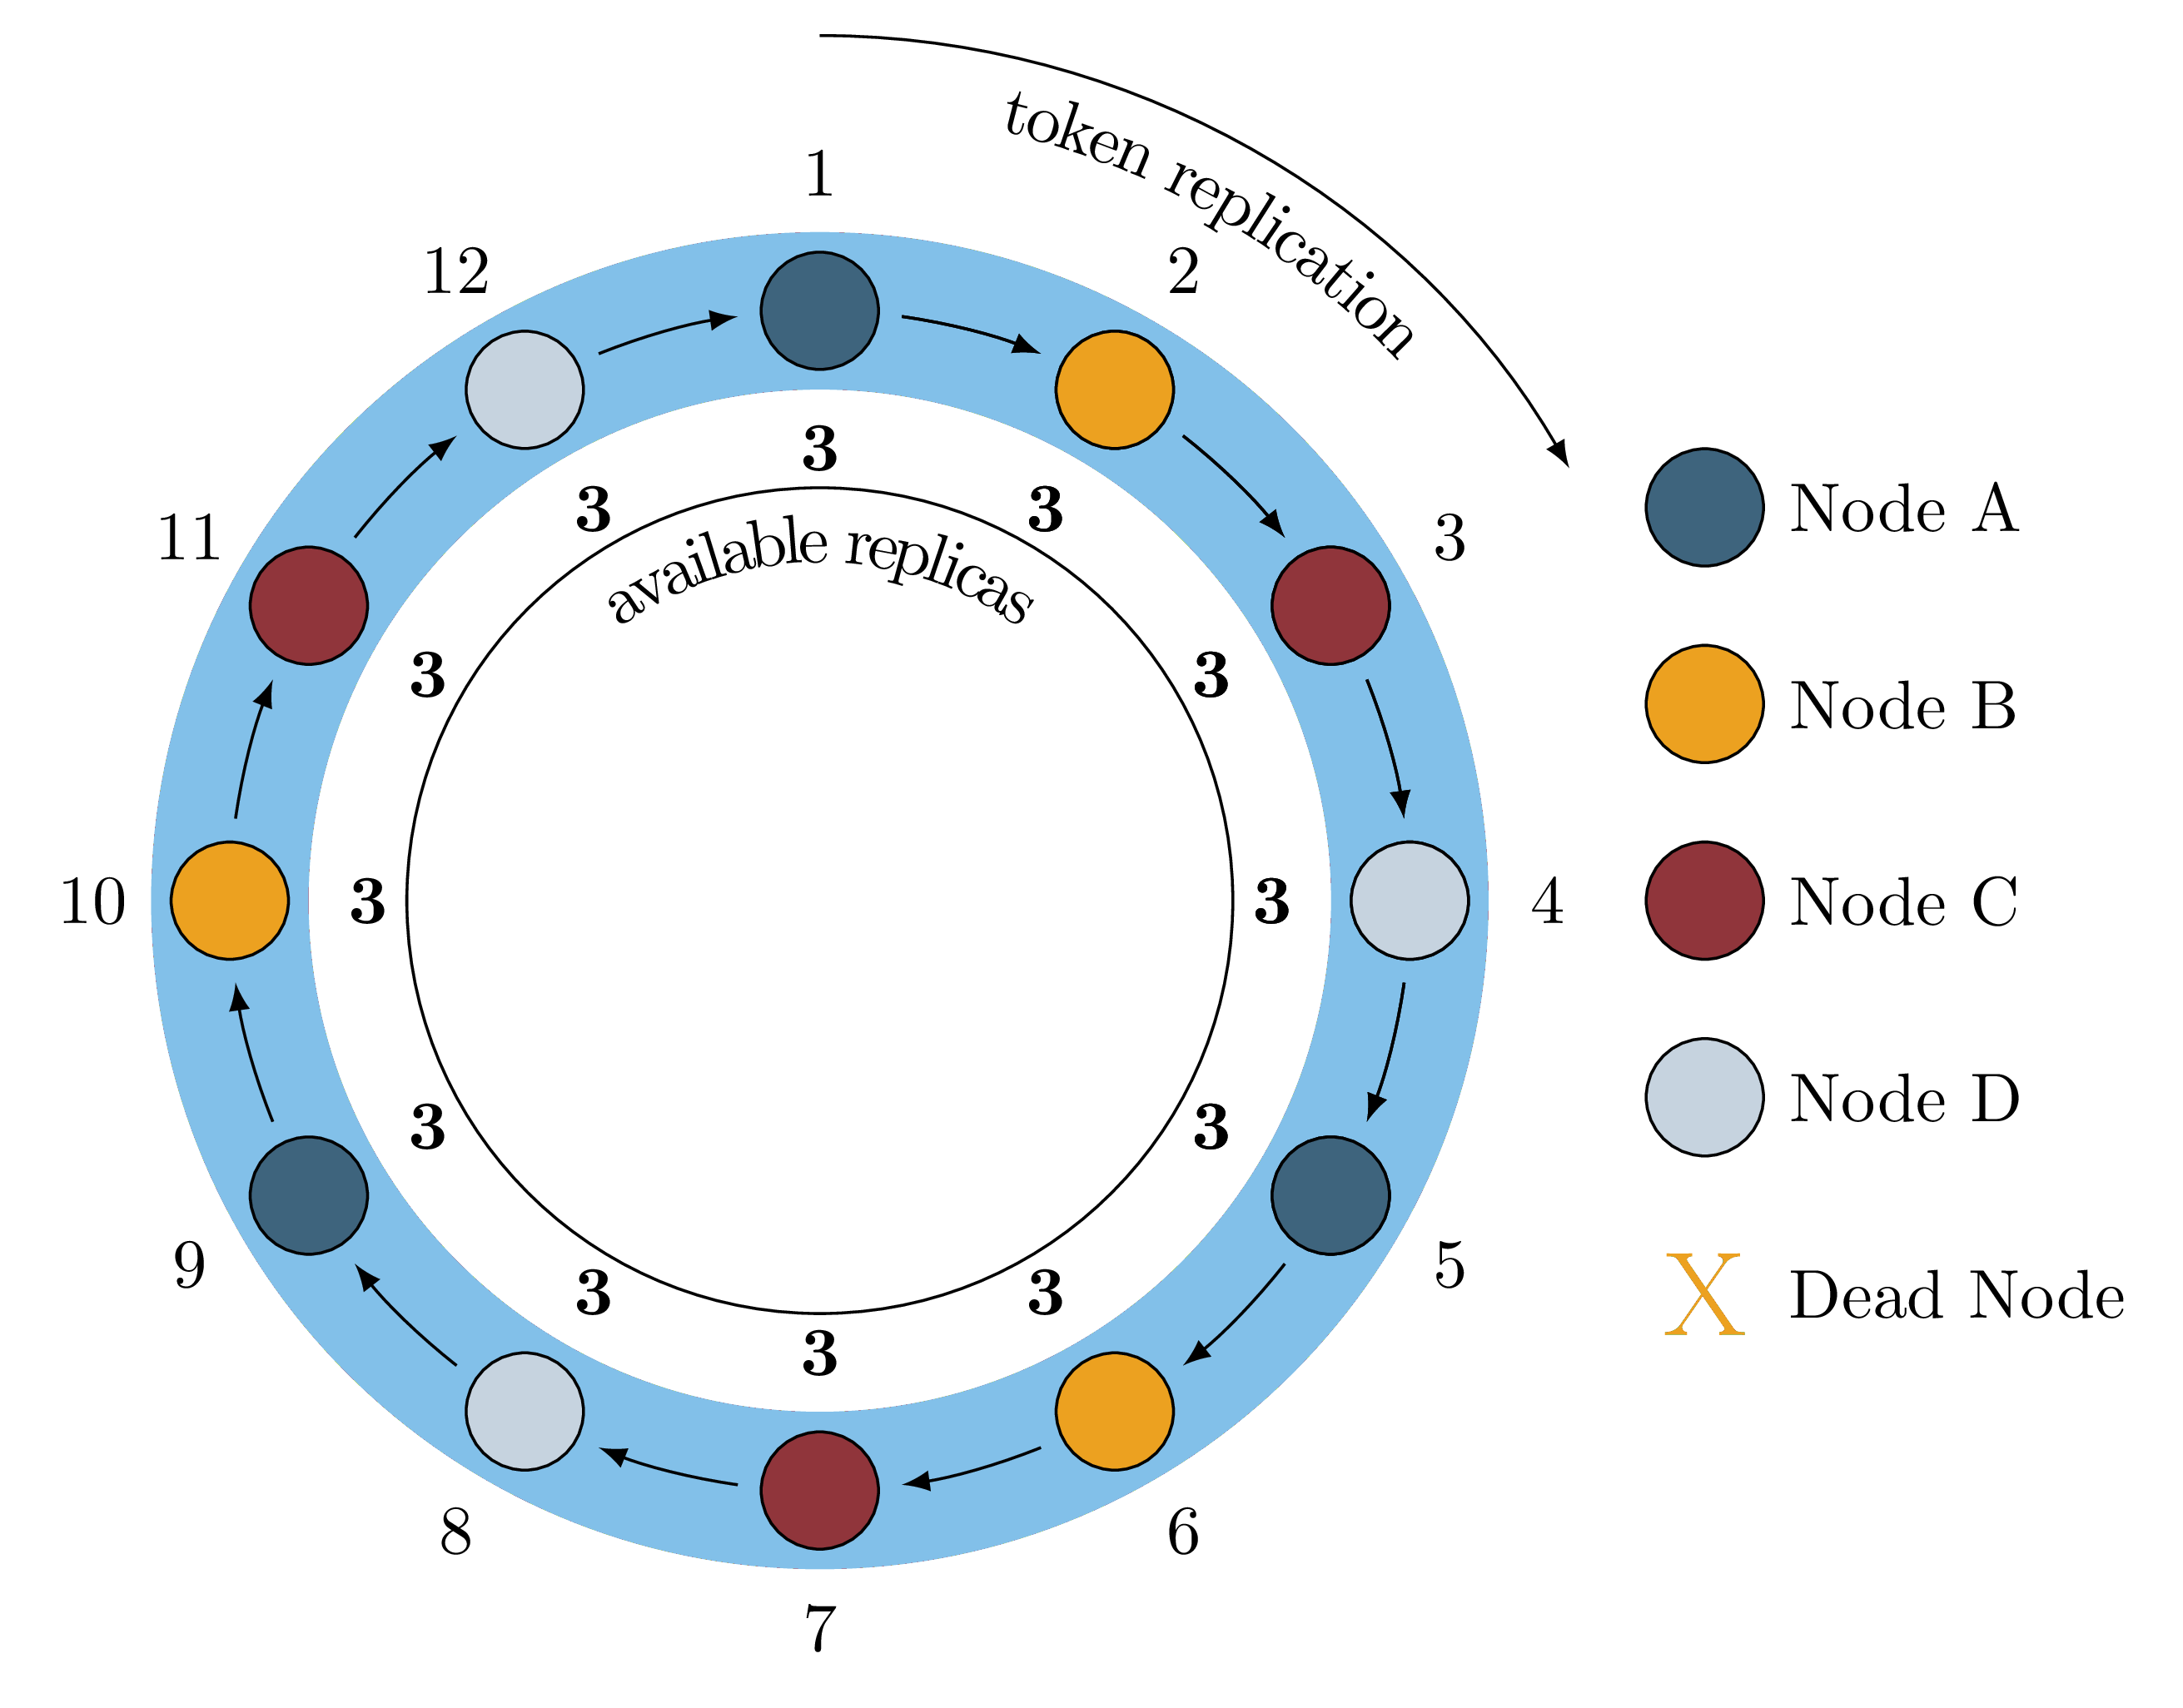 Figure 1: A Healthy Ring